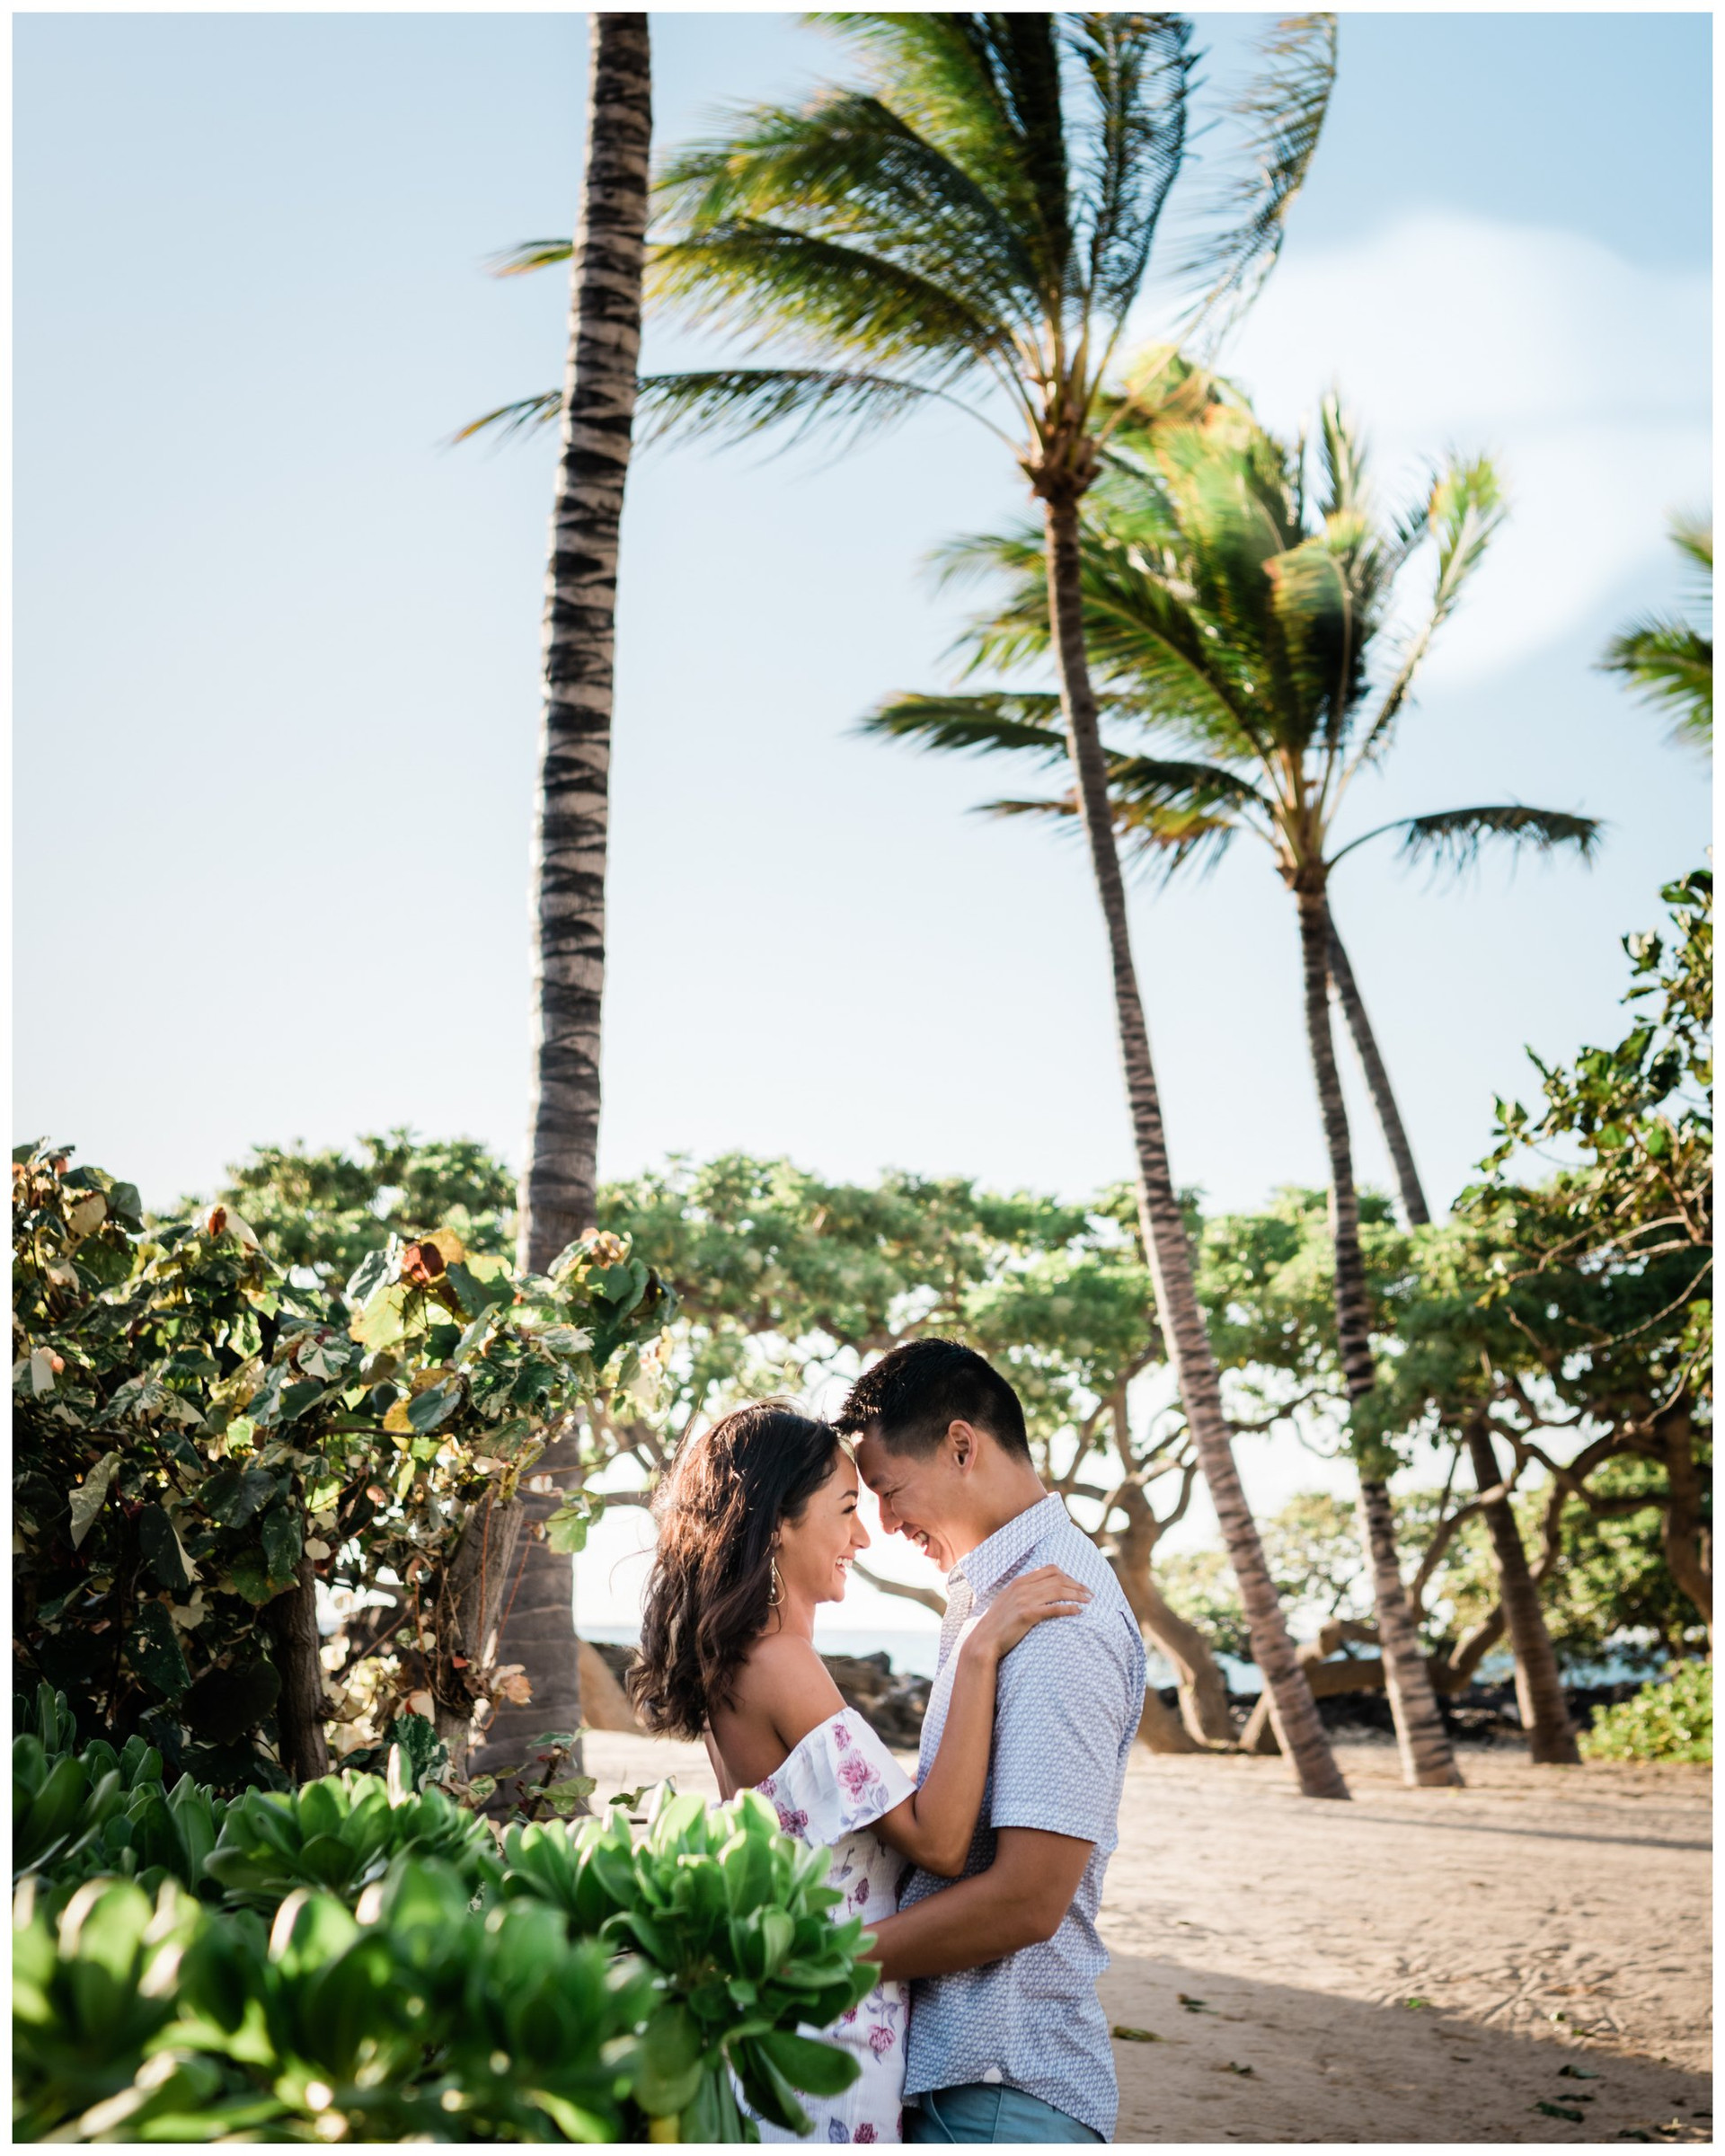 Hawaii Engagment Photography 7.jpg